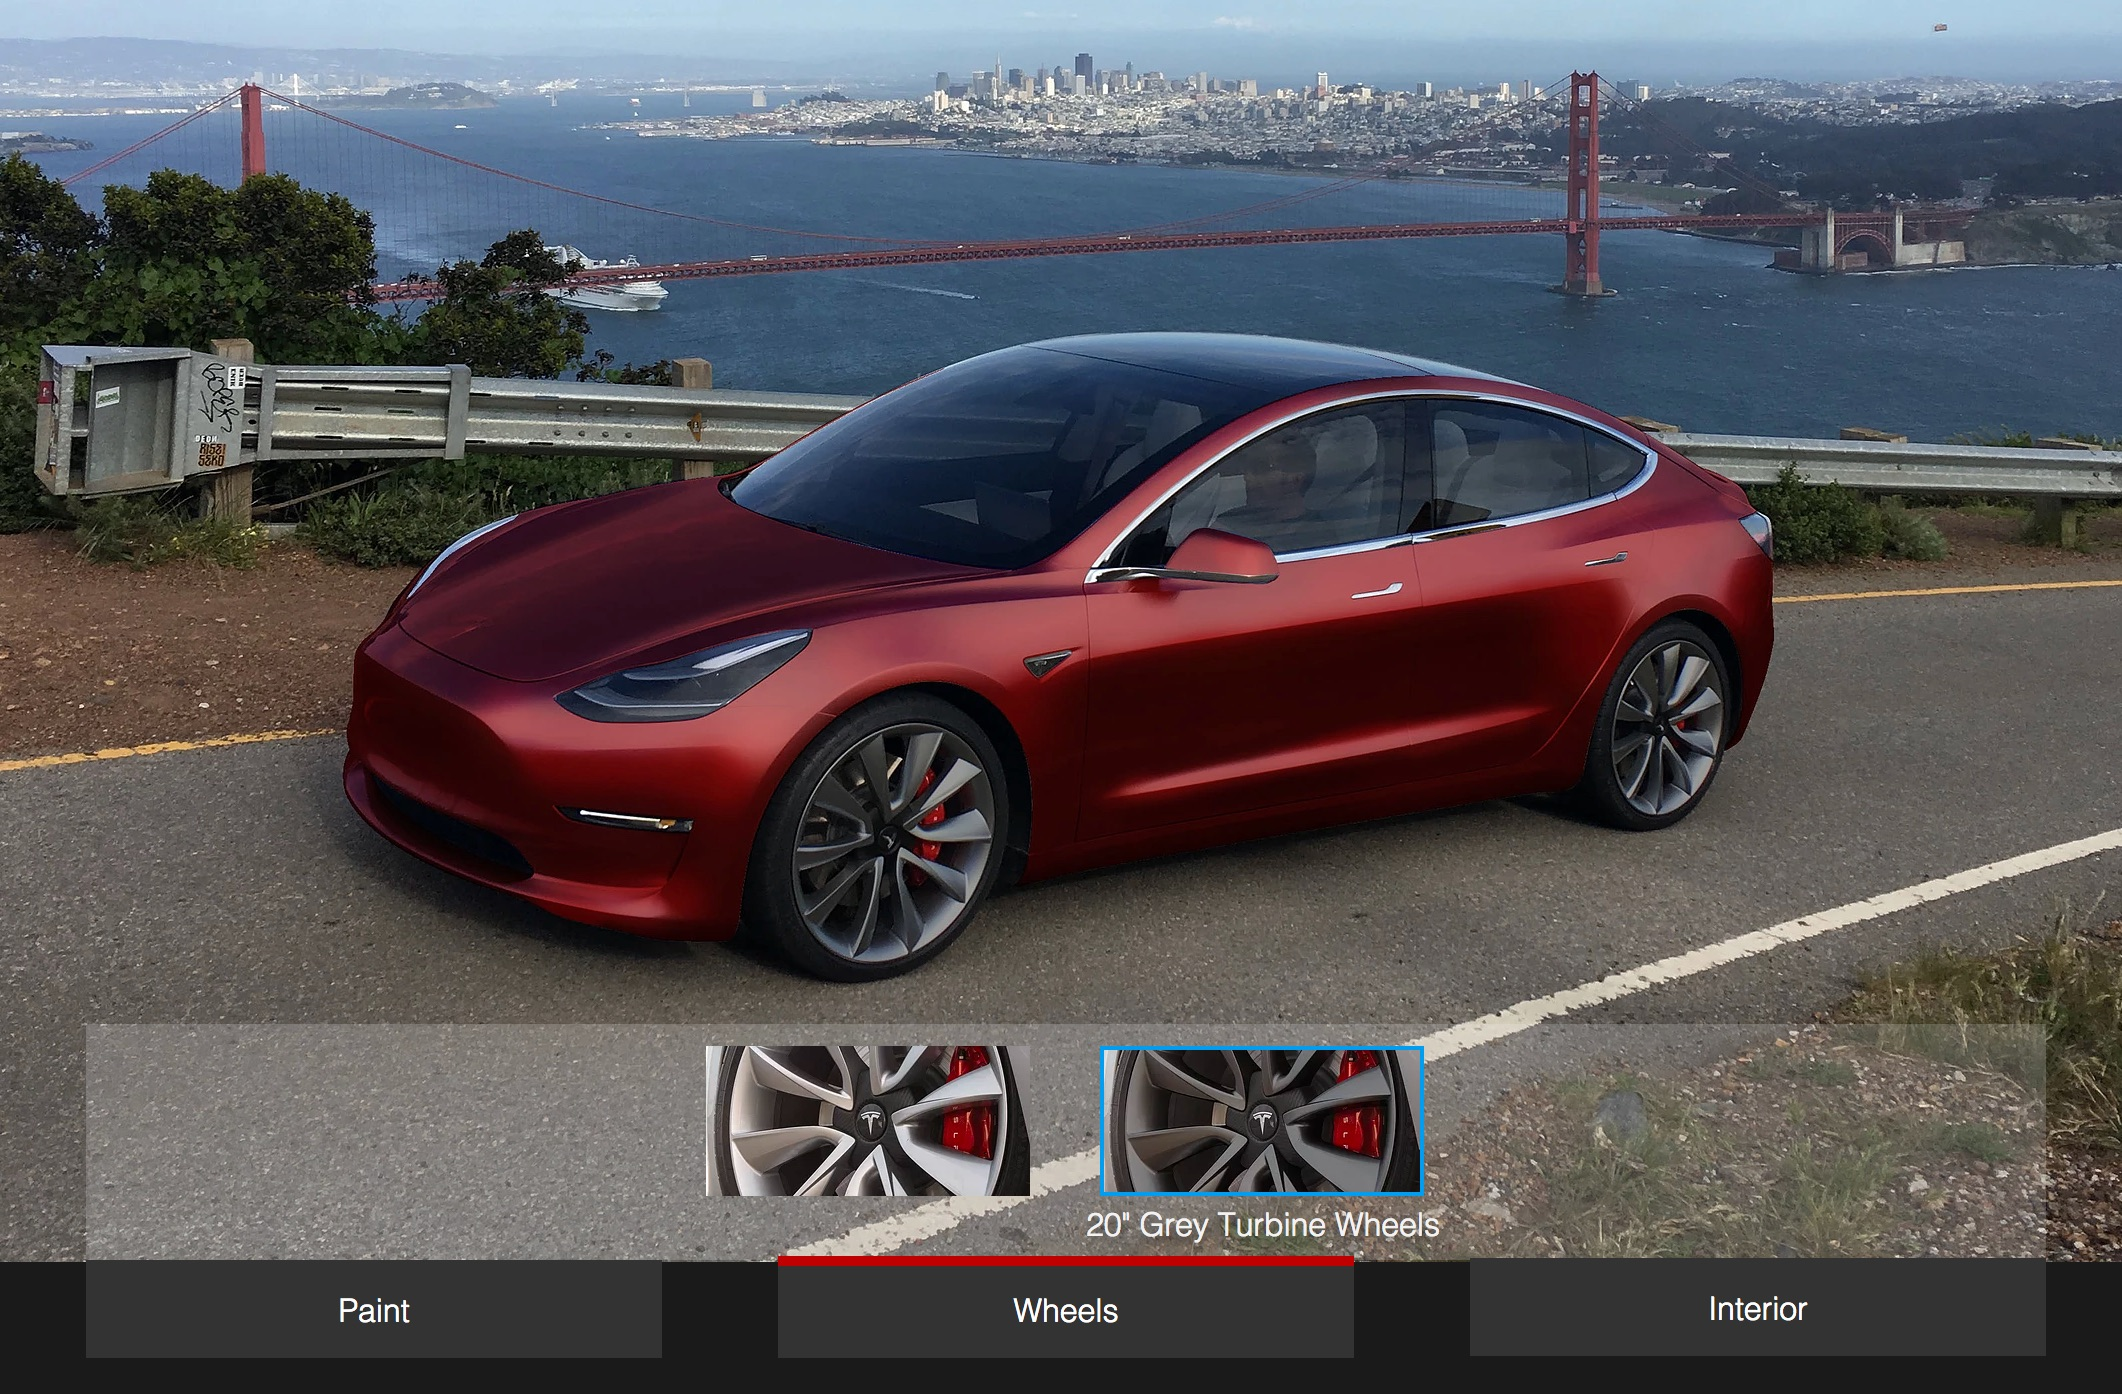 Tesla Model 3 Design Studio will initially have choice of color and